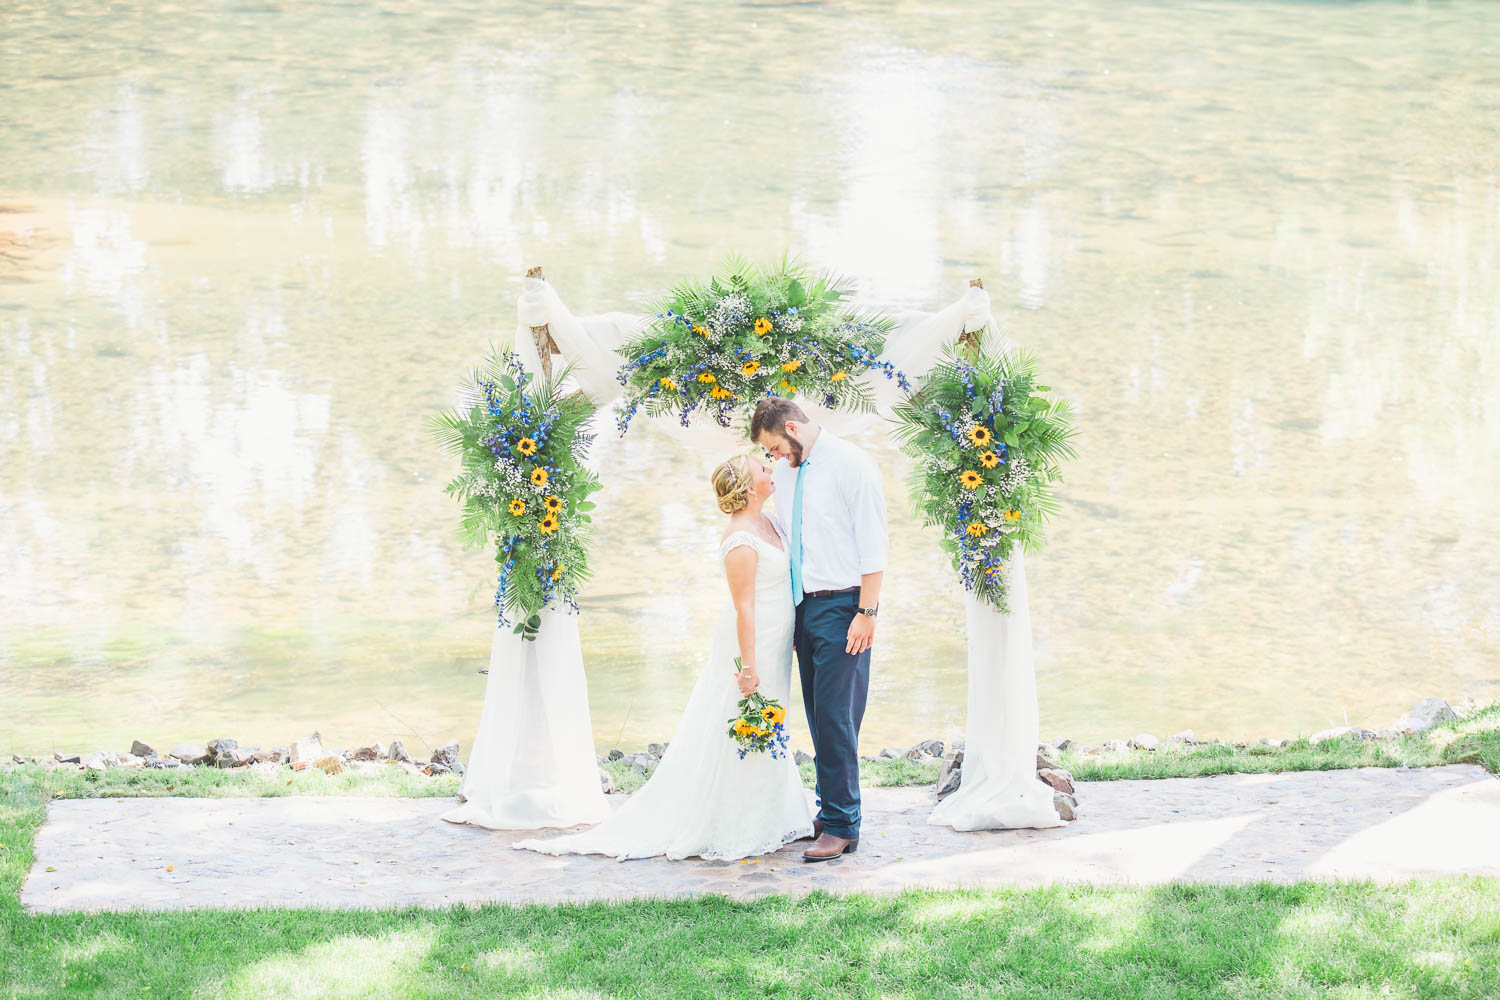 A Hiwassee River Weddings Sunflower Wedding | Collin and Peyton